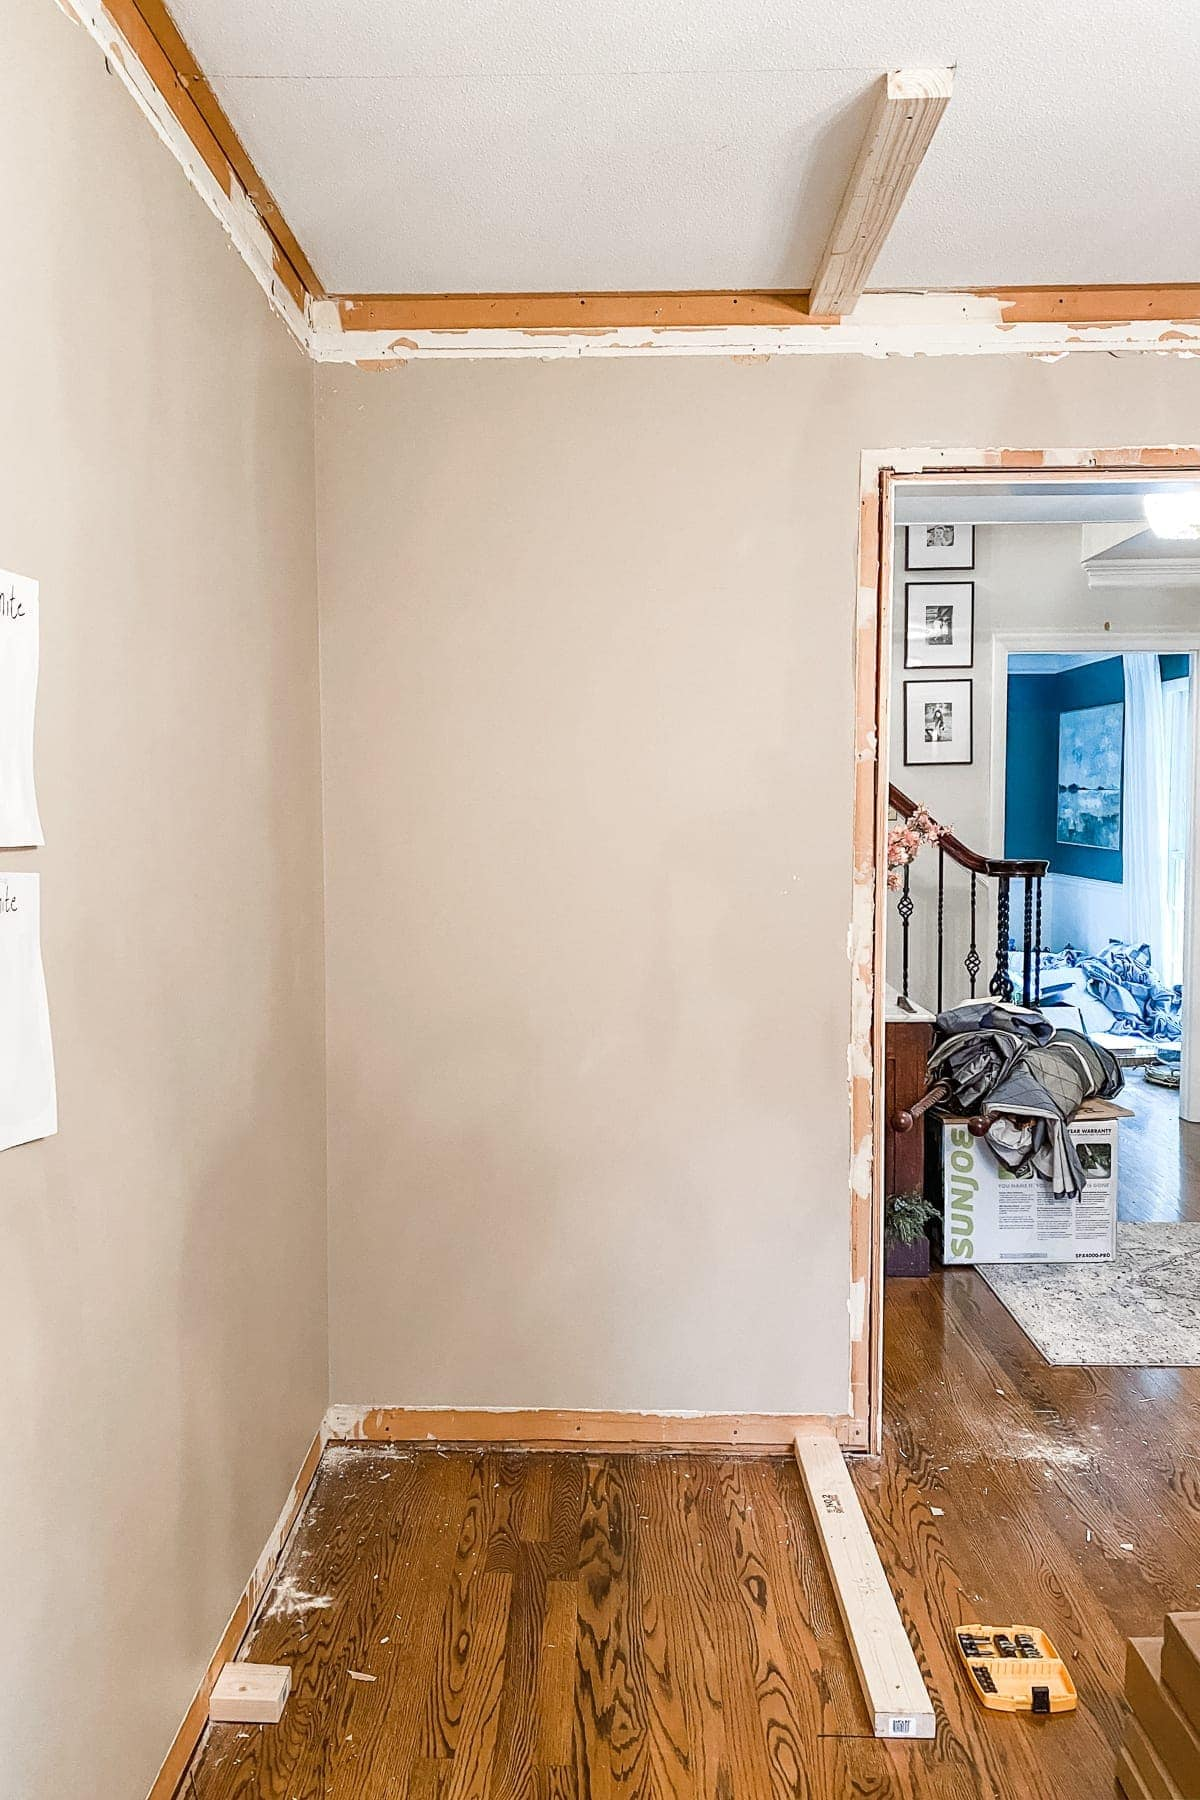 How to Build a Closet | A step-by-step tutorial to DIY build a closet from scratch + home office makeover progress